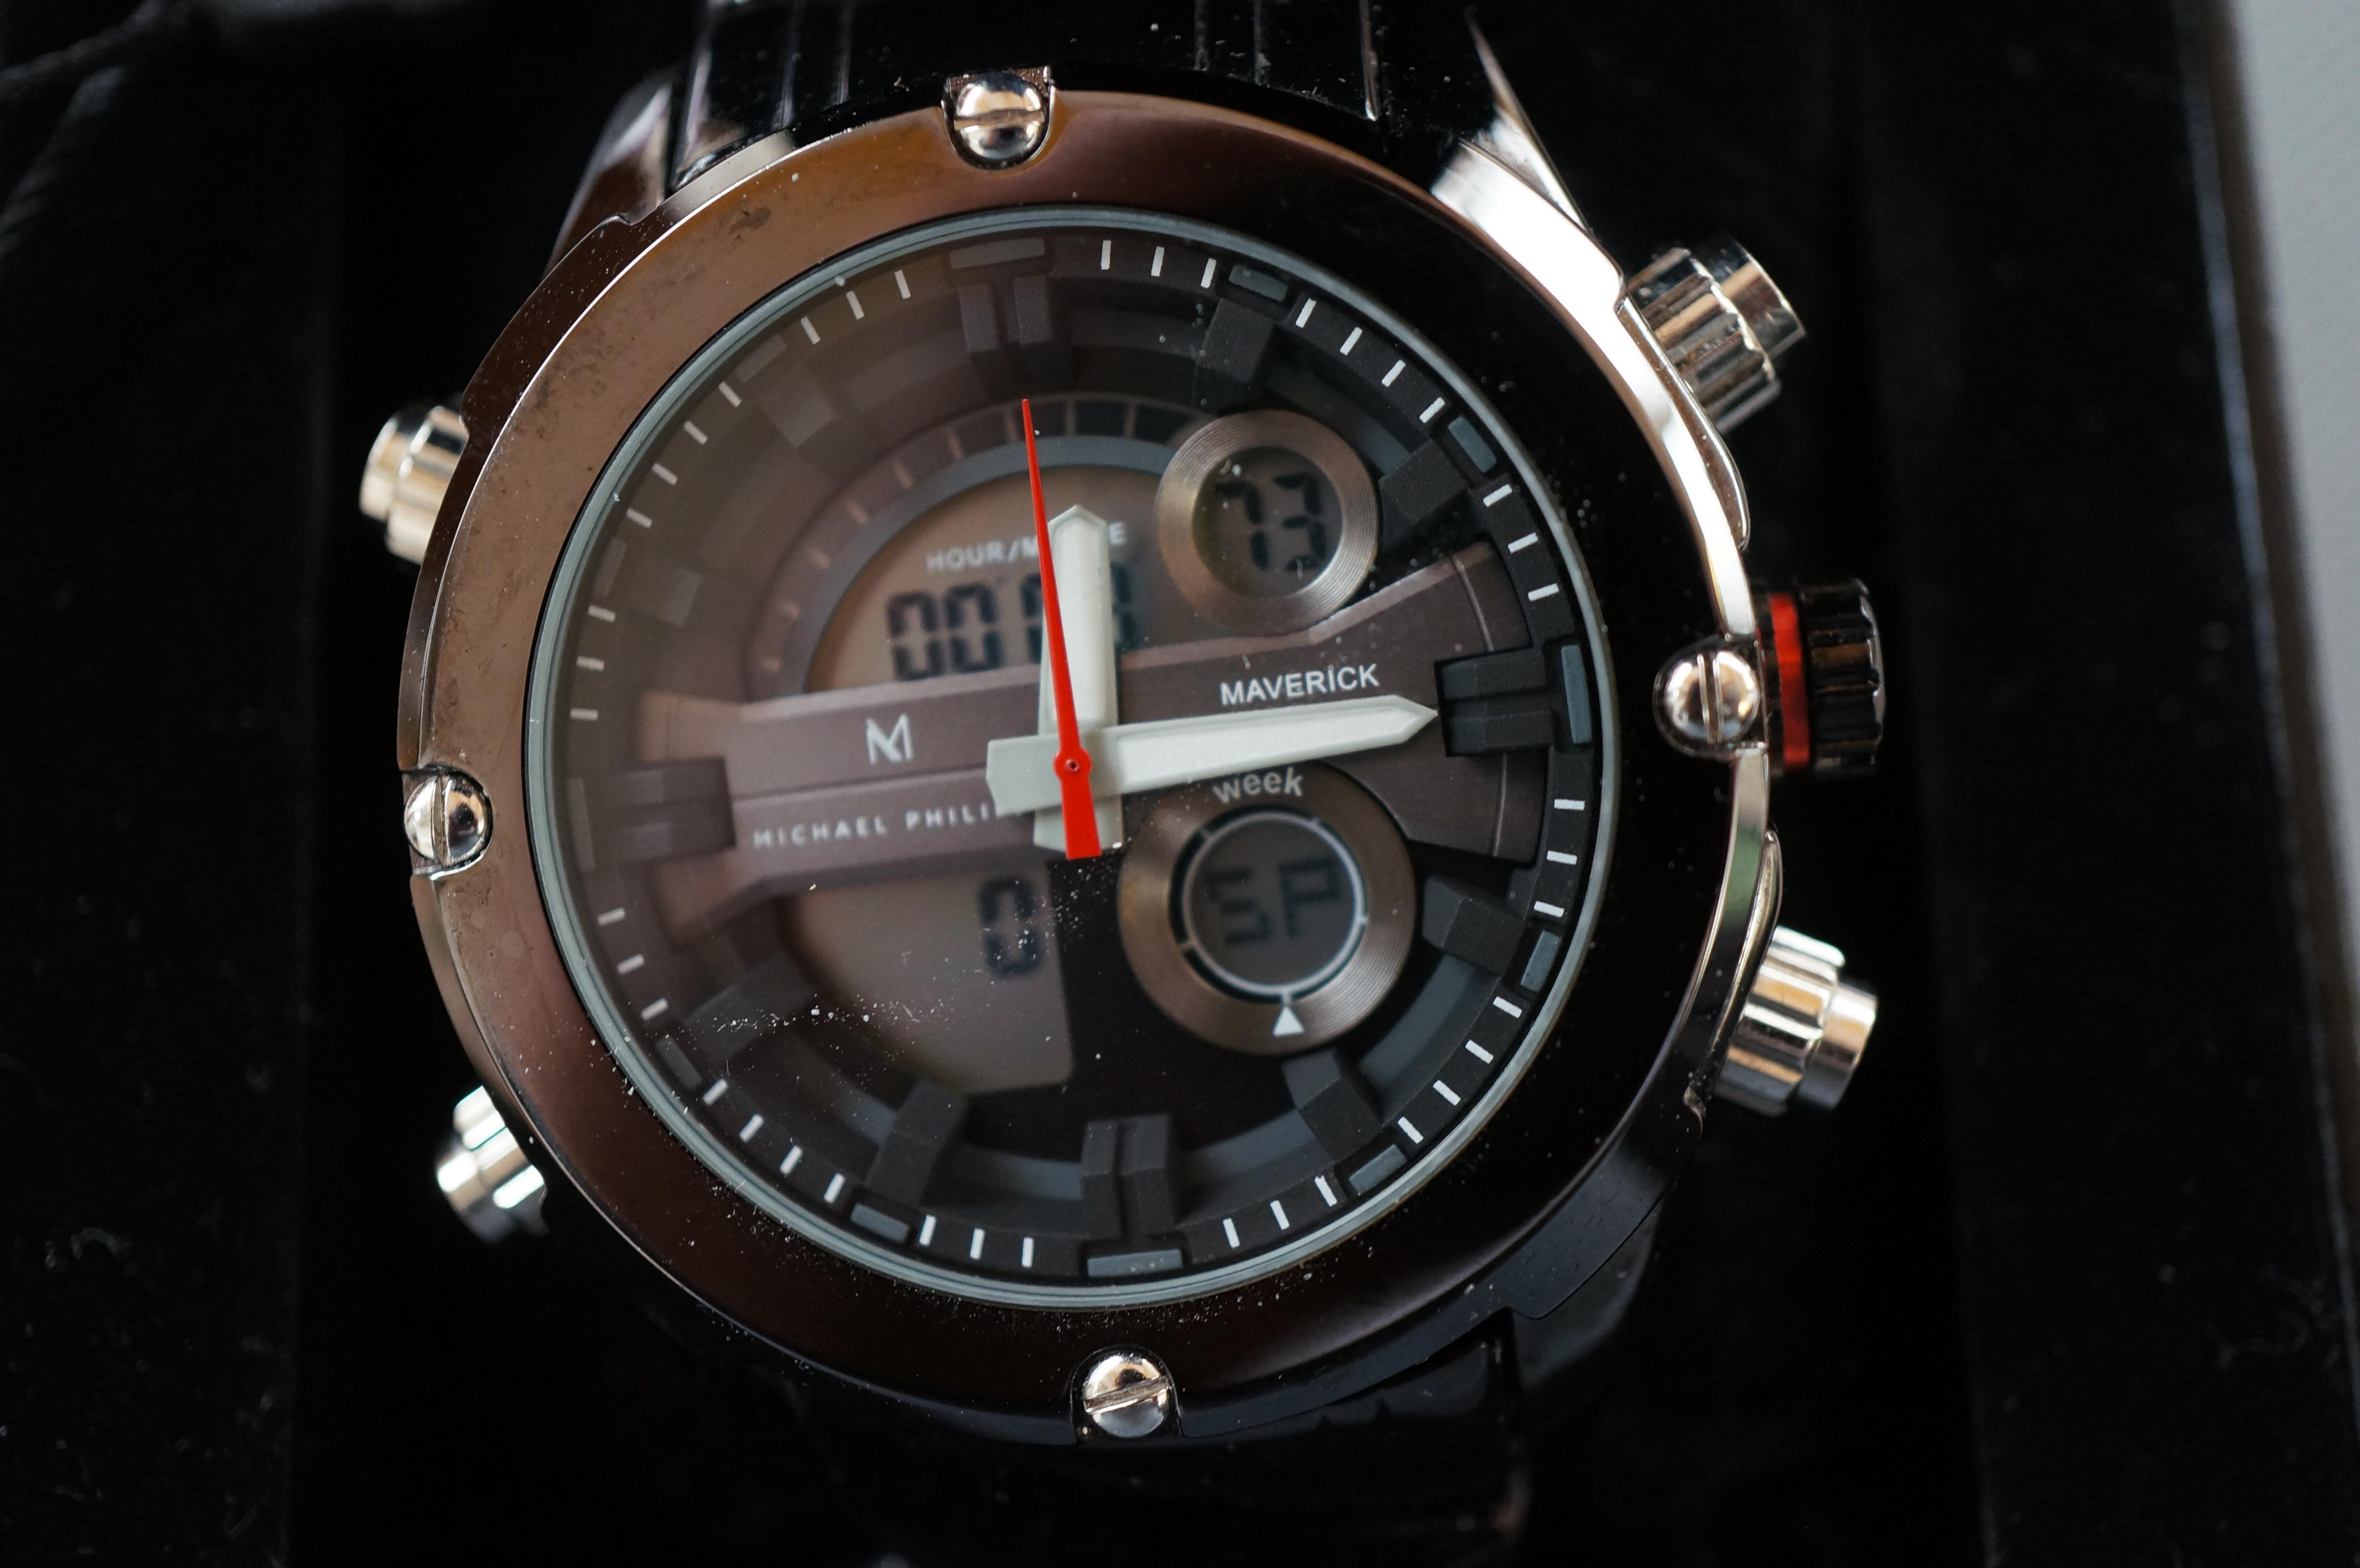 Gents Michael Phillipe Wristwatch Unused with Tags